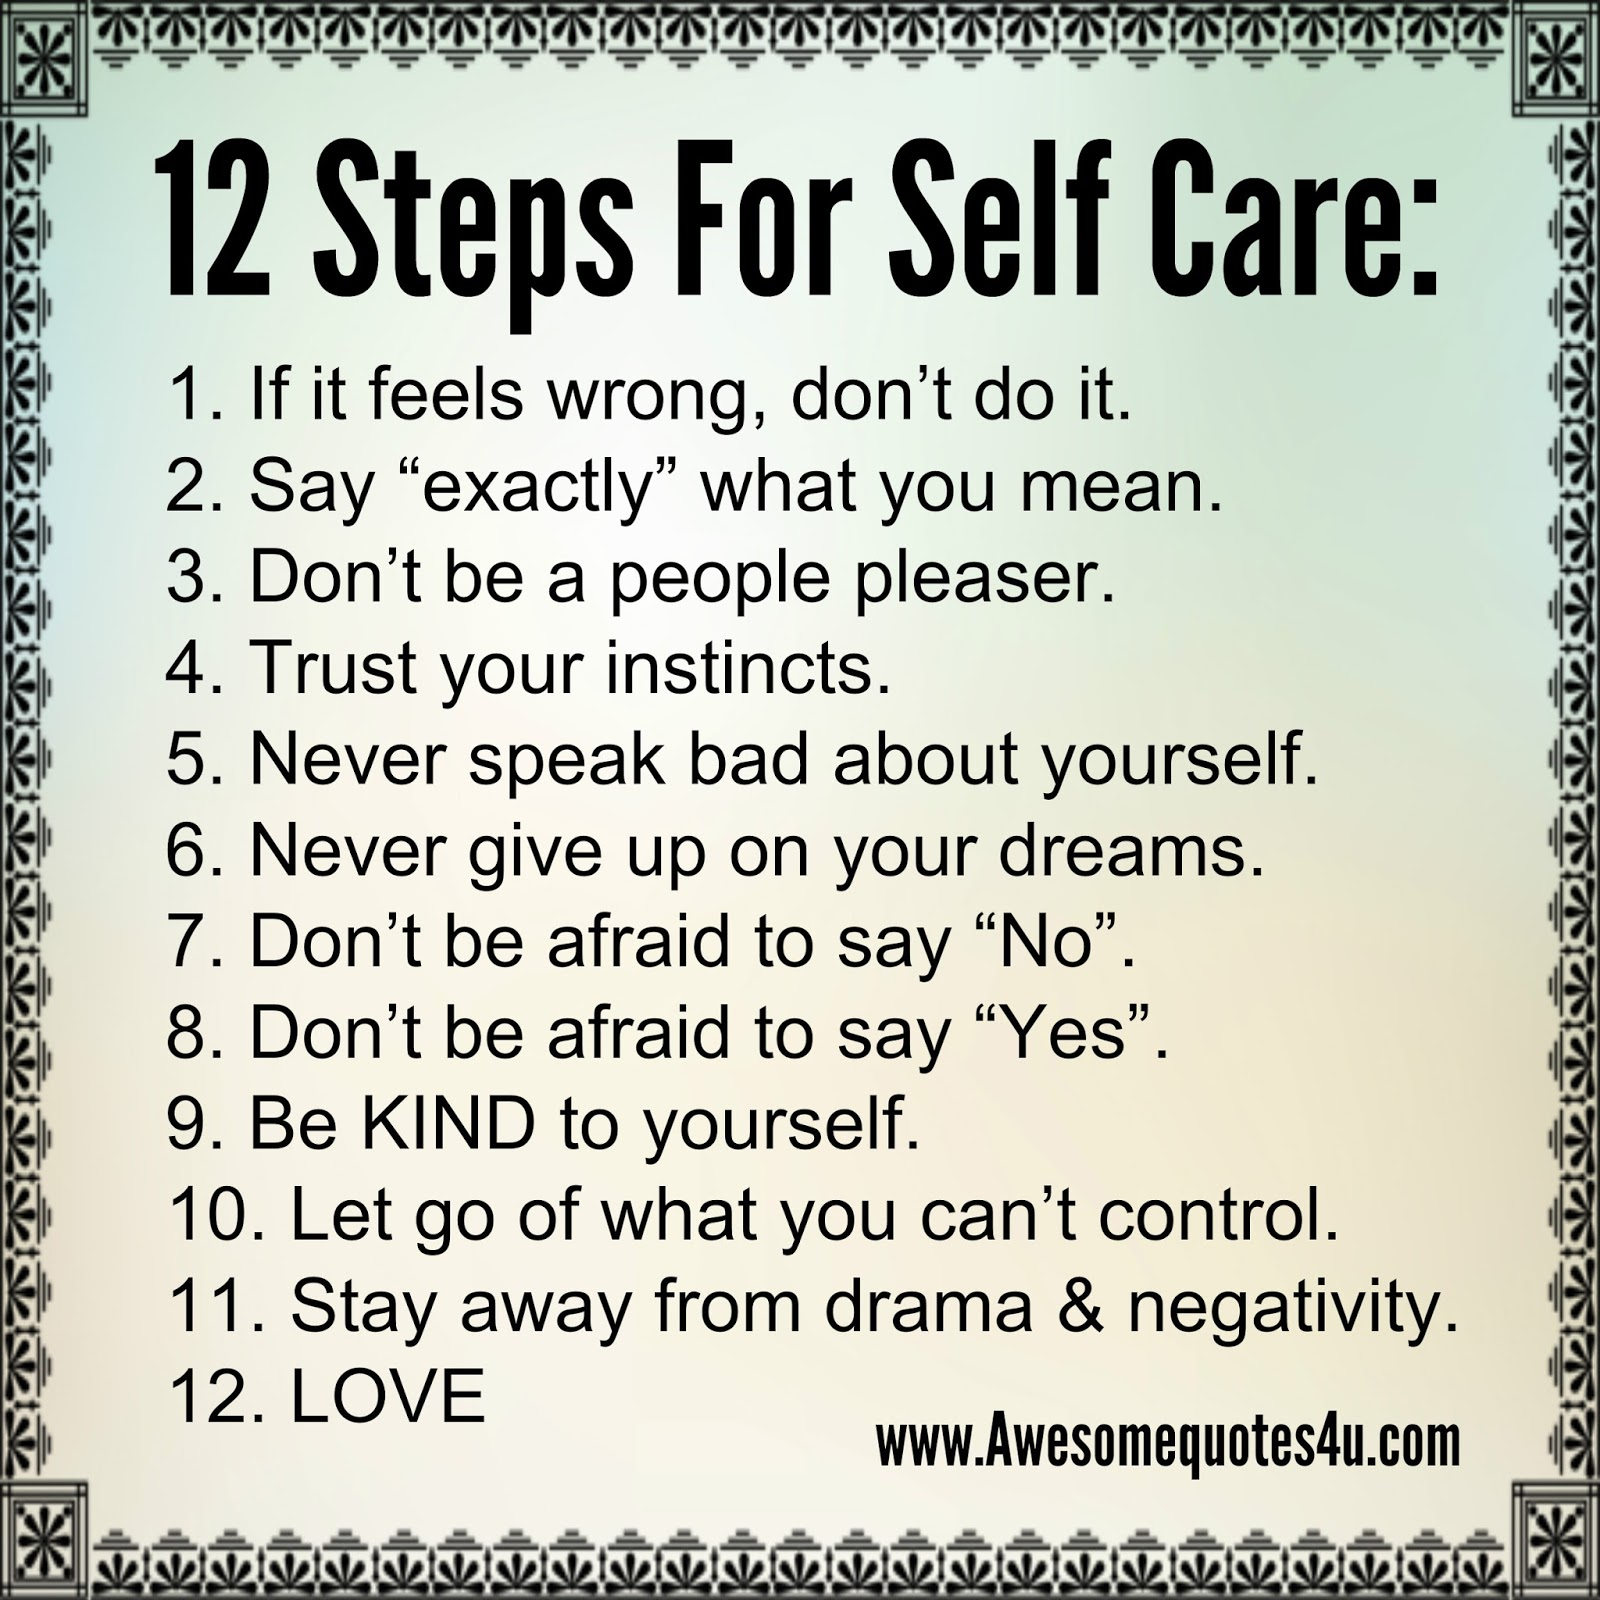 Awesome Quotes 12 Steps For Self Care